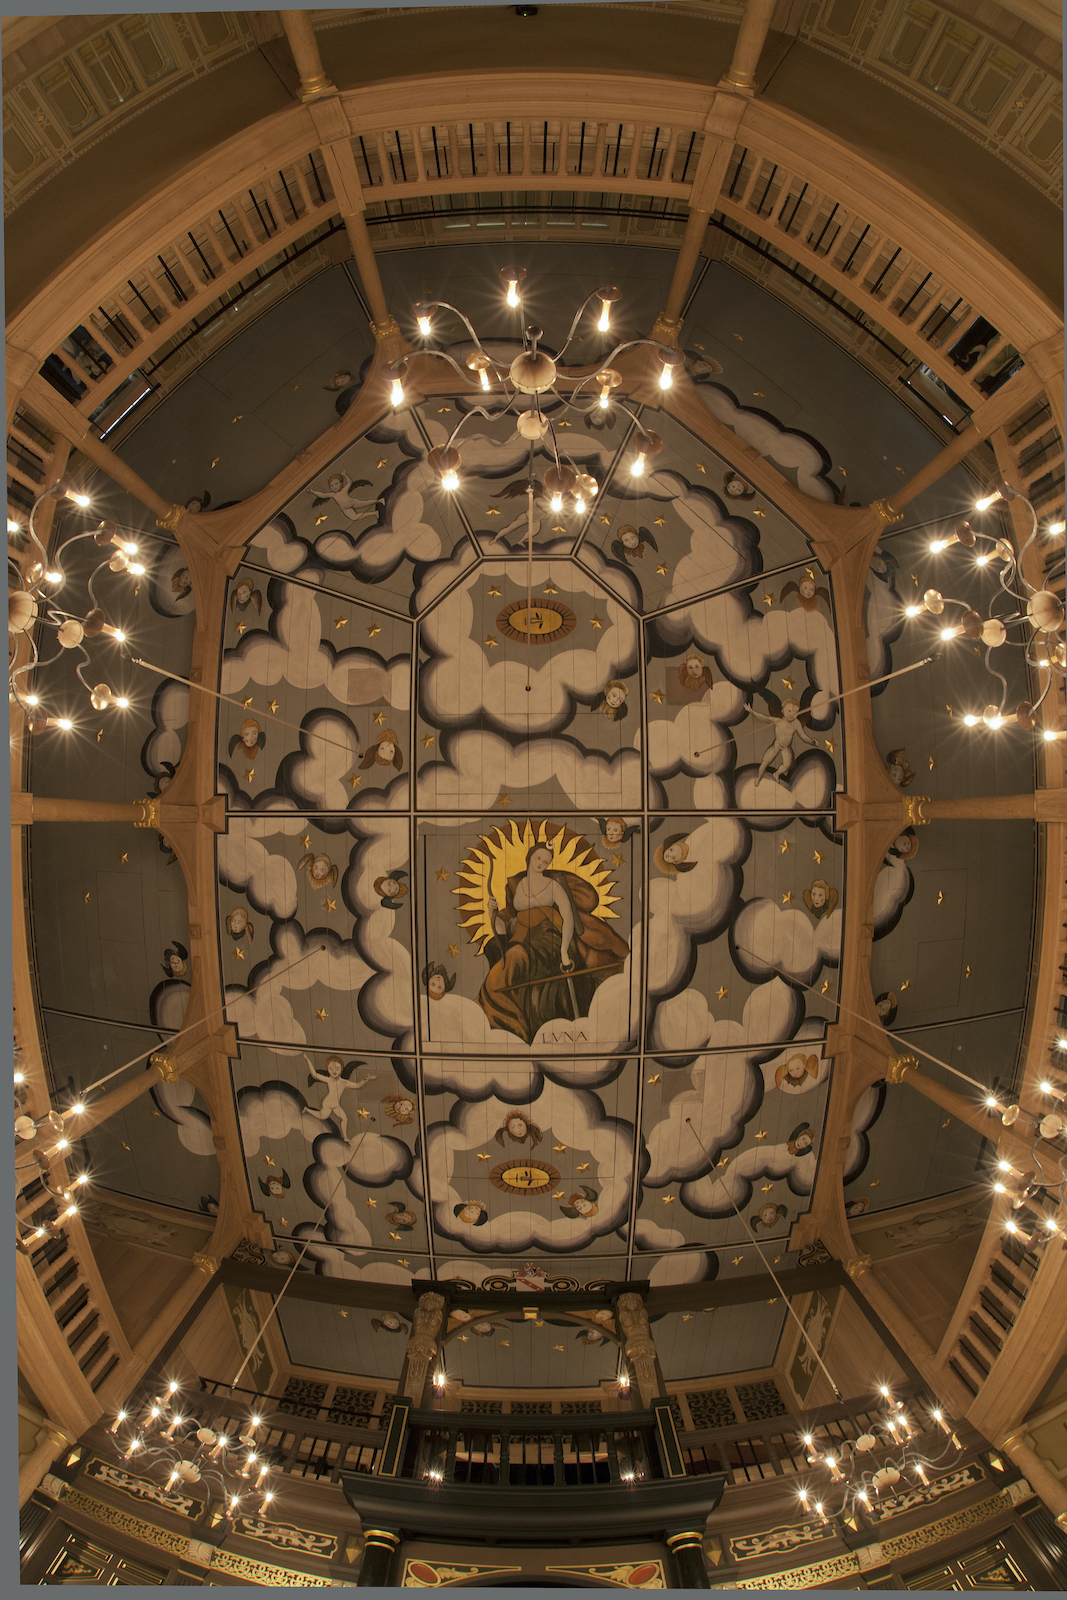 A decorated ceiling with candles